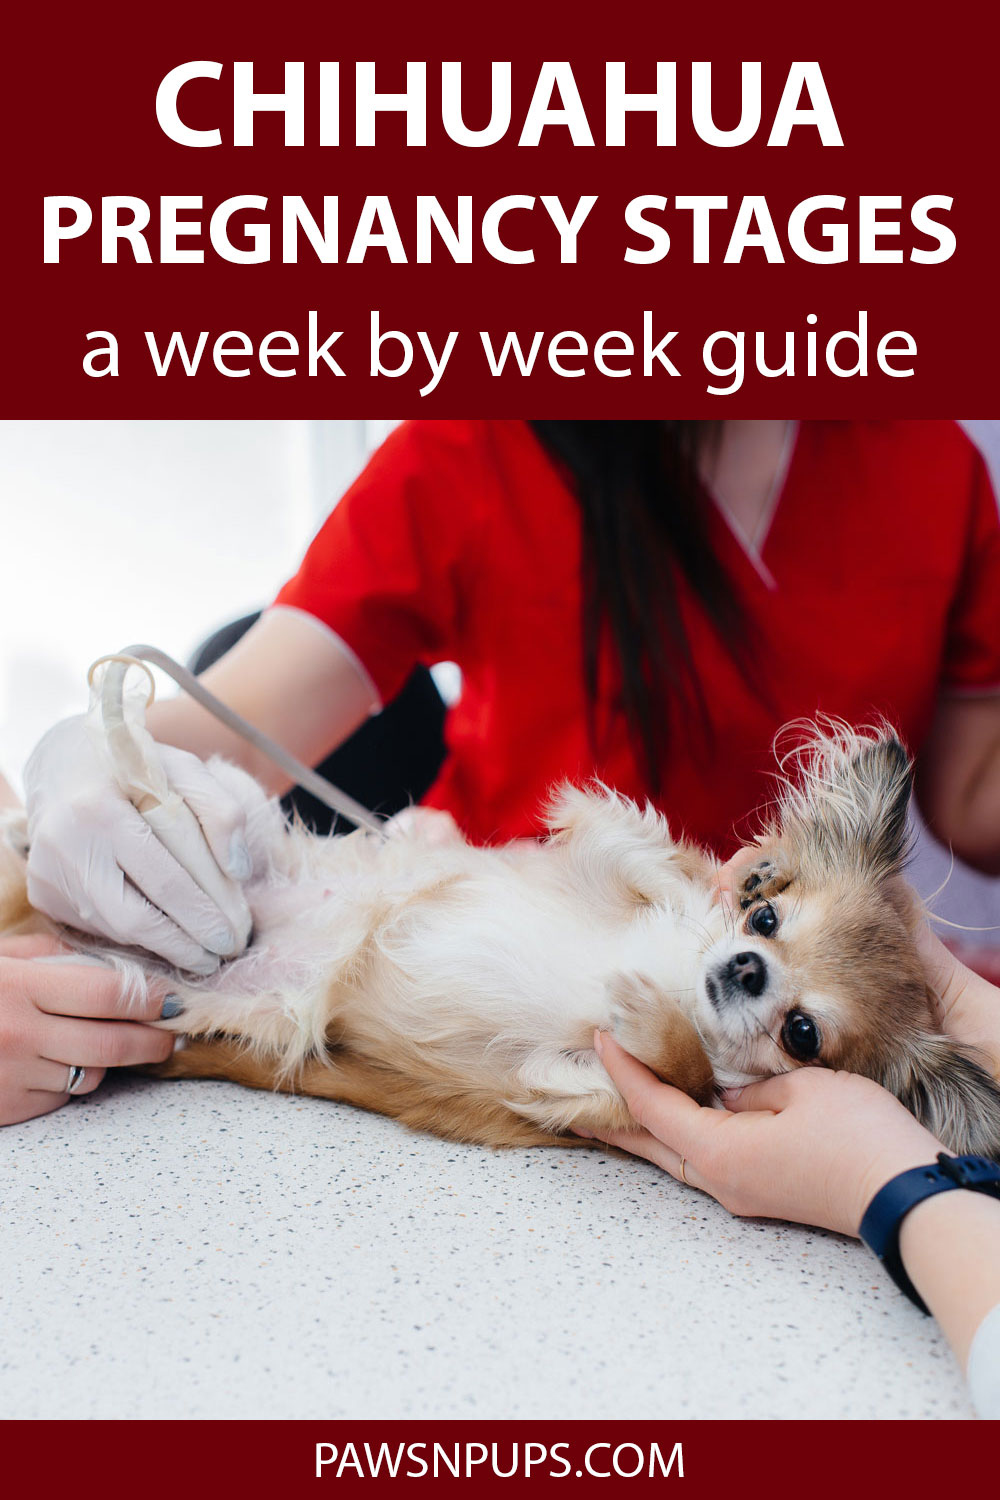 Chihuahua Pregnancy Stages A Week By Week Guide - pregnant long haired Chihuahua getting ultrasound at vets office.